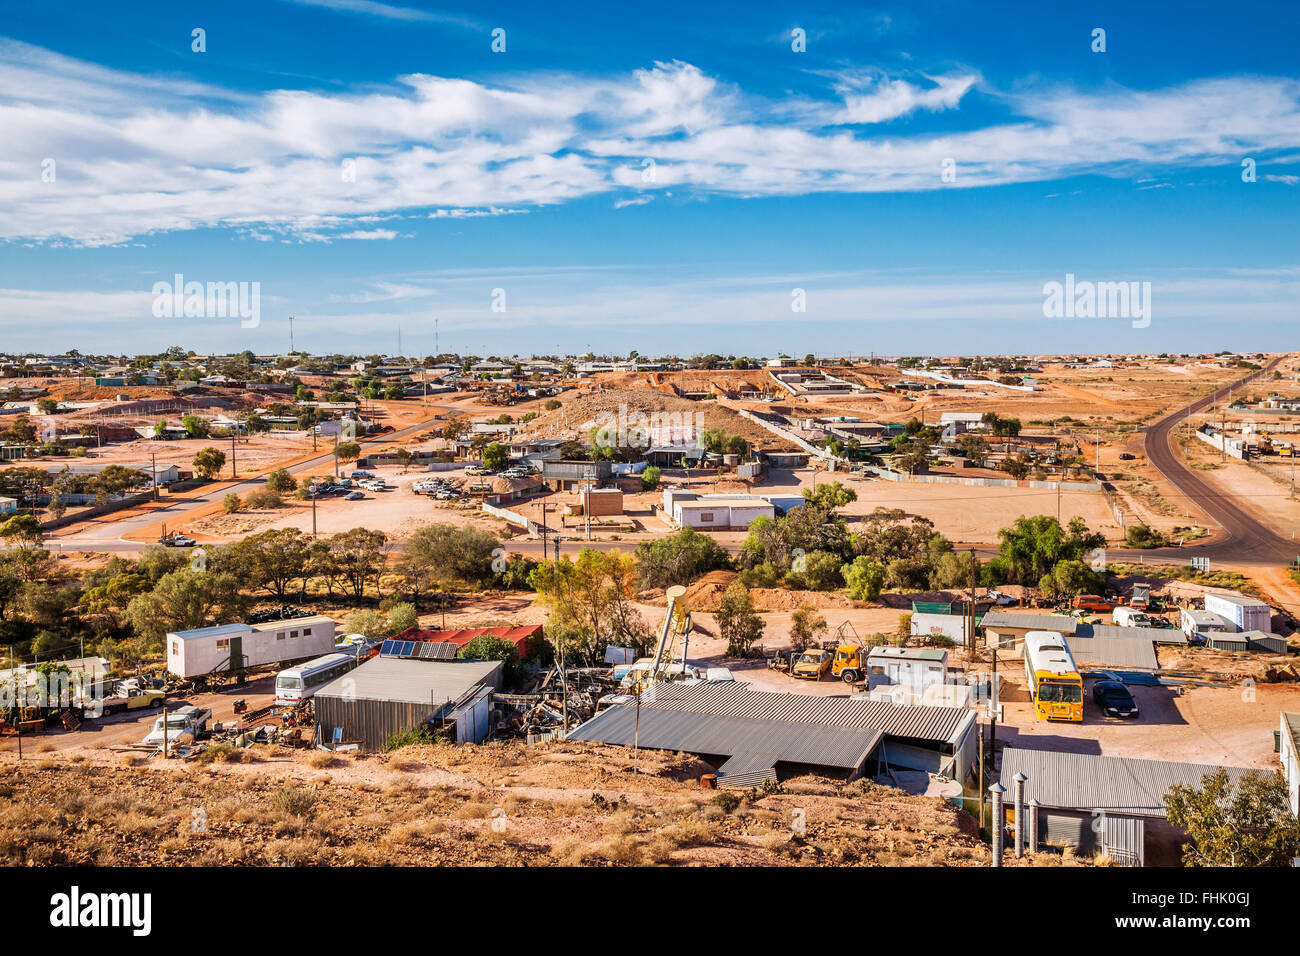 Australia, South Australia, Outback, Coober Pedy, view of the isolated opal mining town - Stock Image